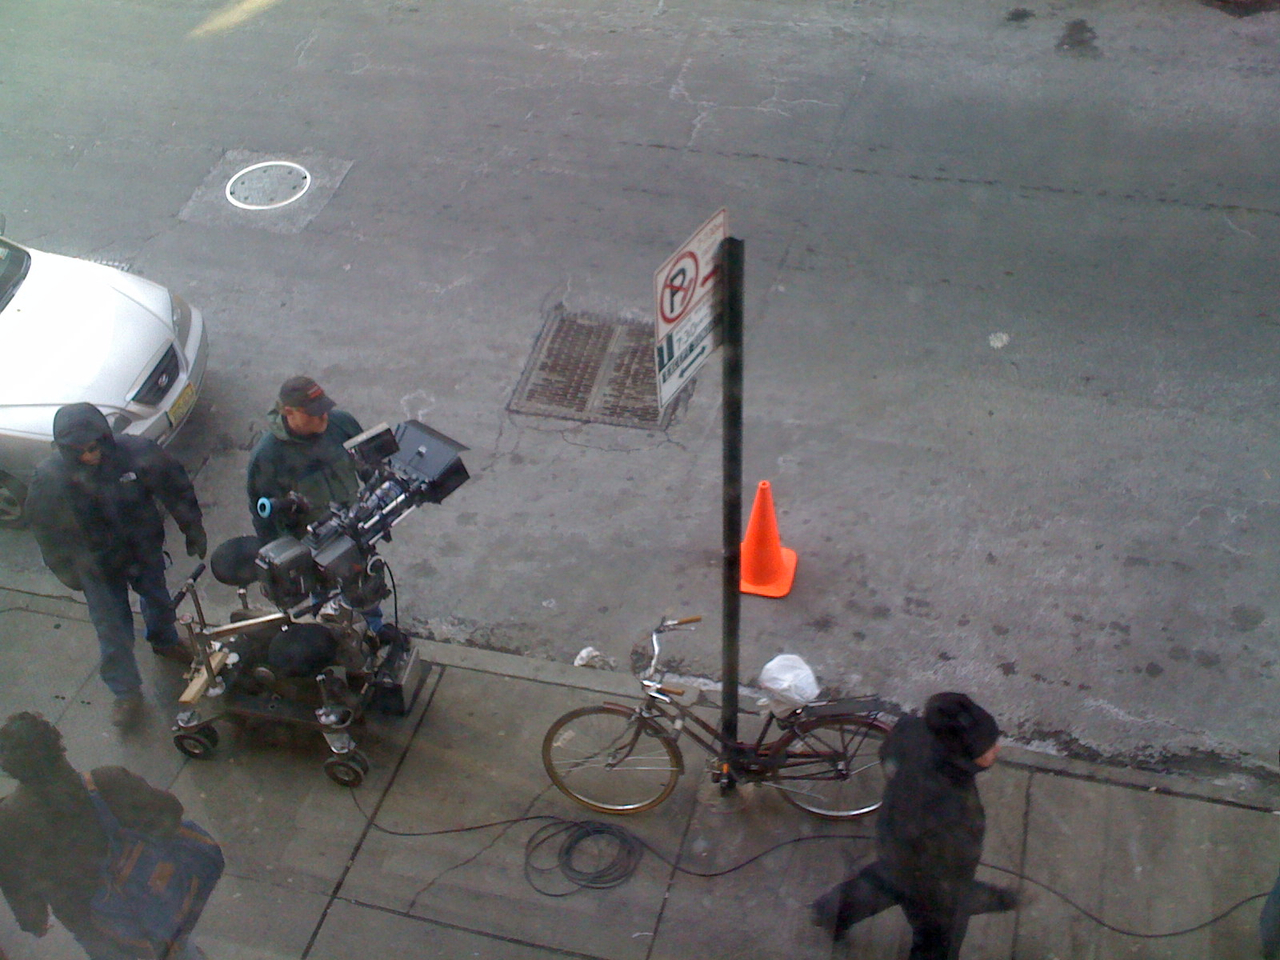 Filming something outside my window.  Waverly Place is such a mooovie set!